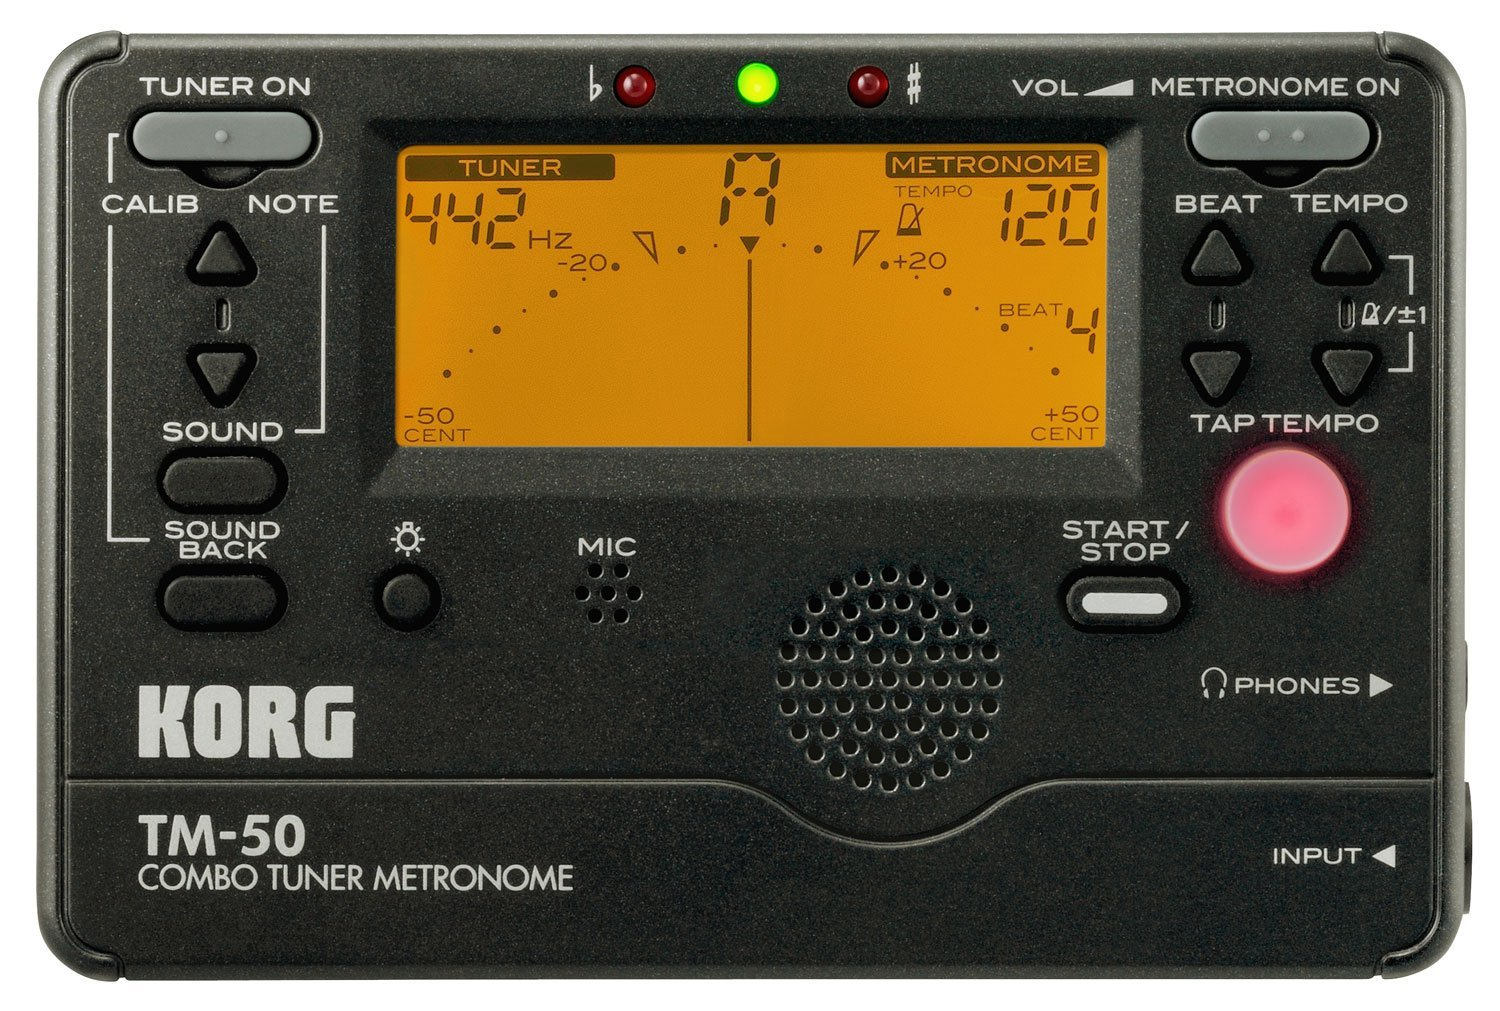 Building a Digital Tuner from Scratch